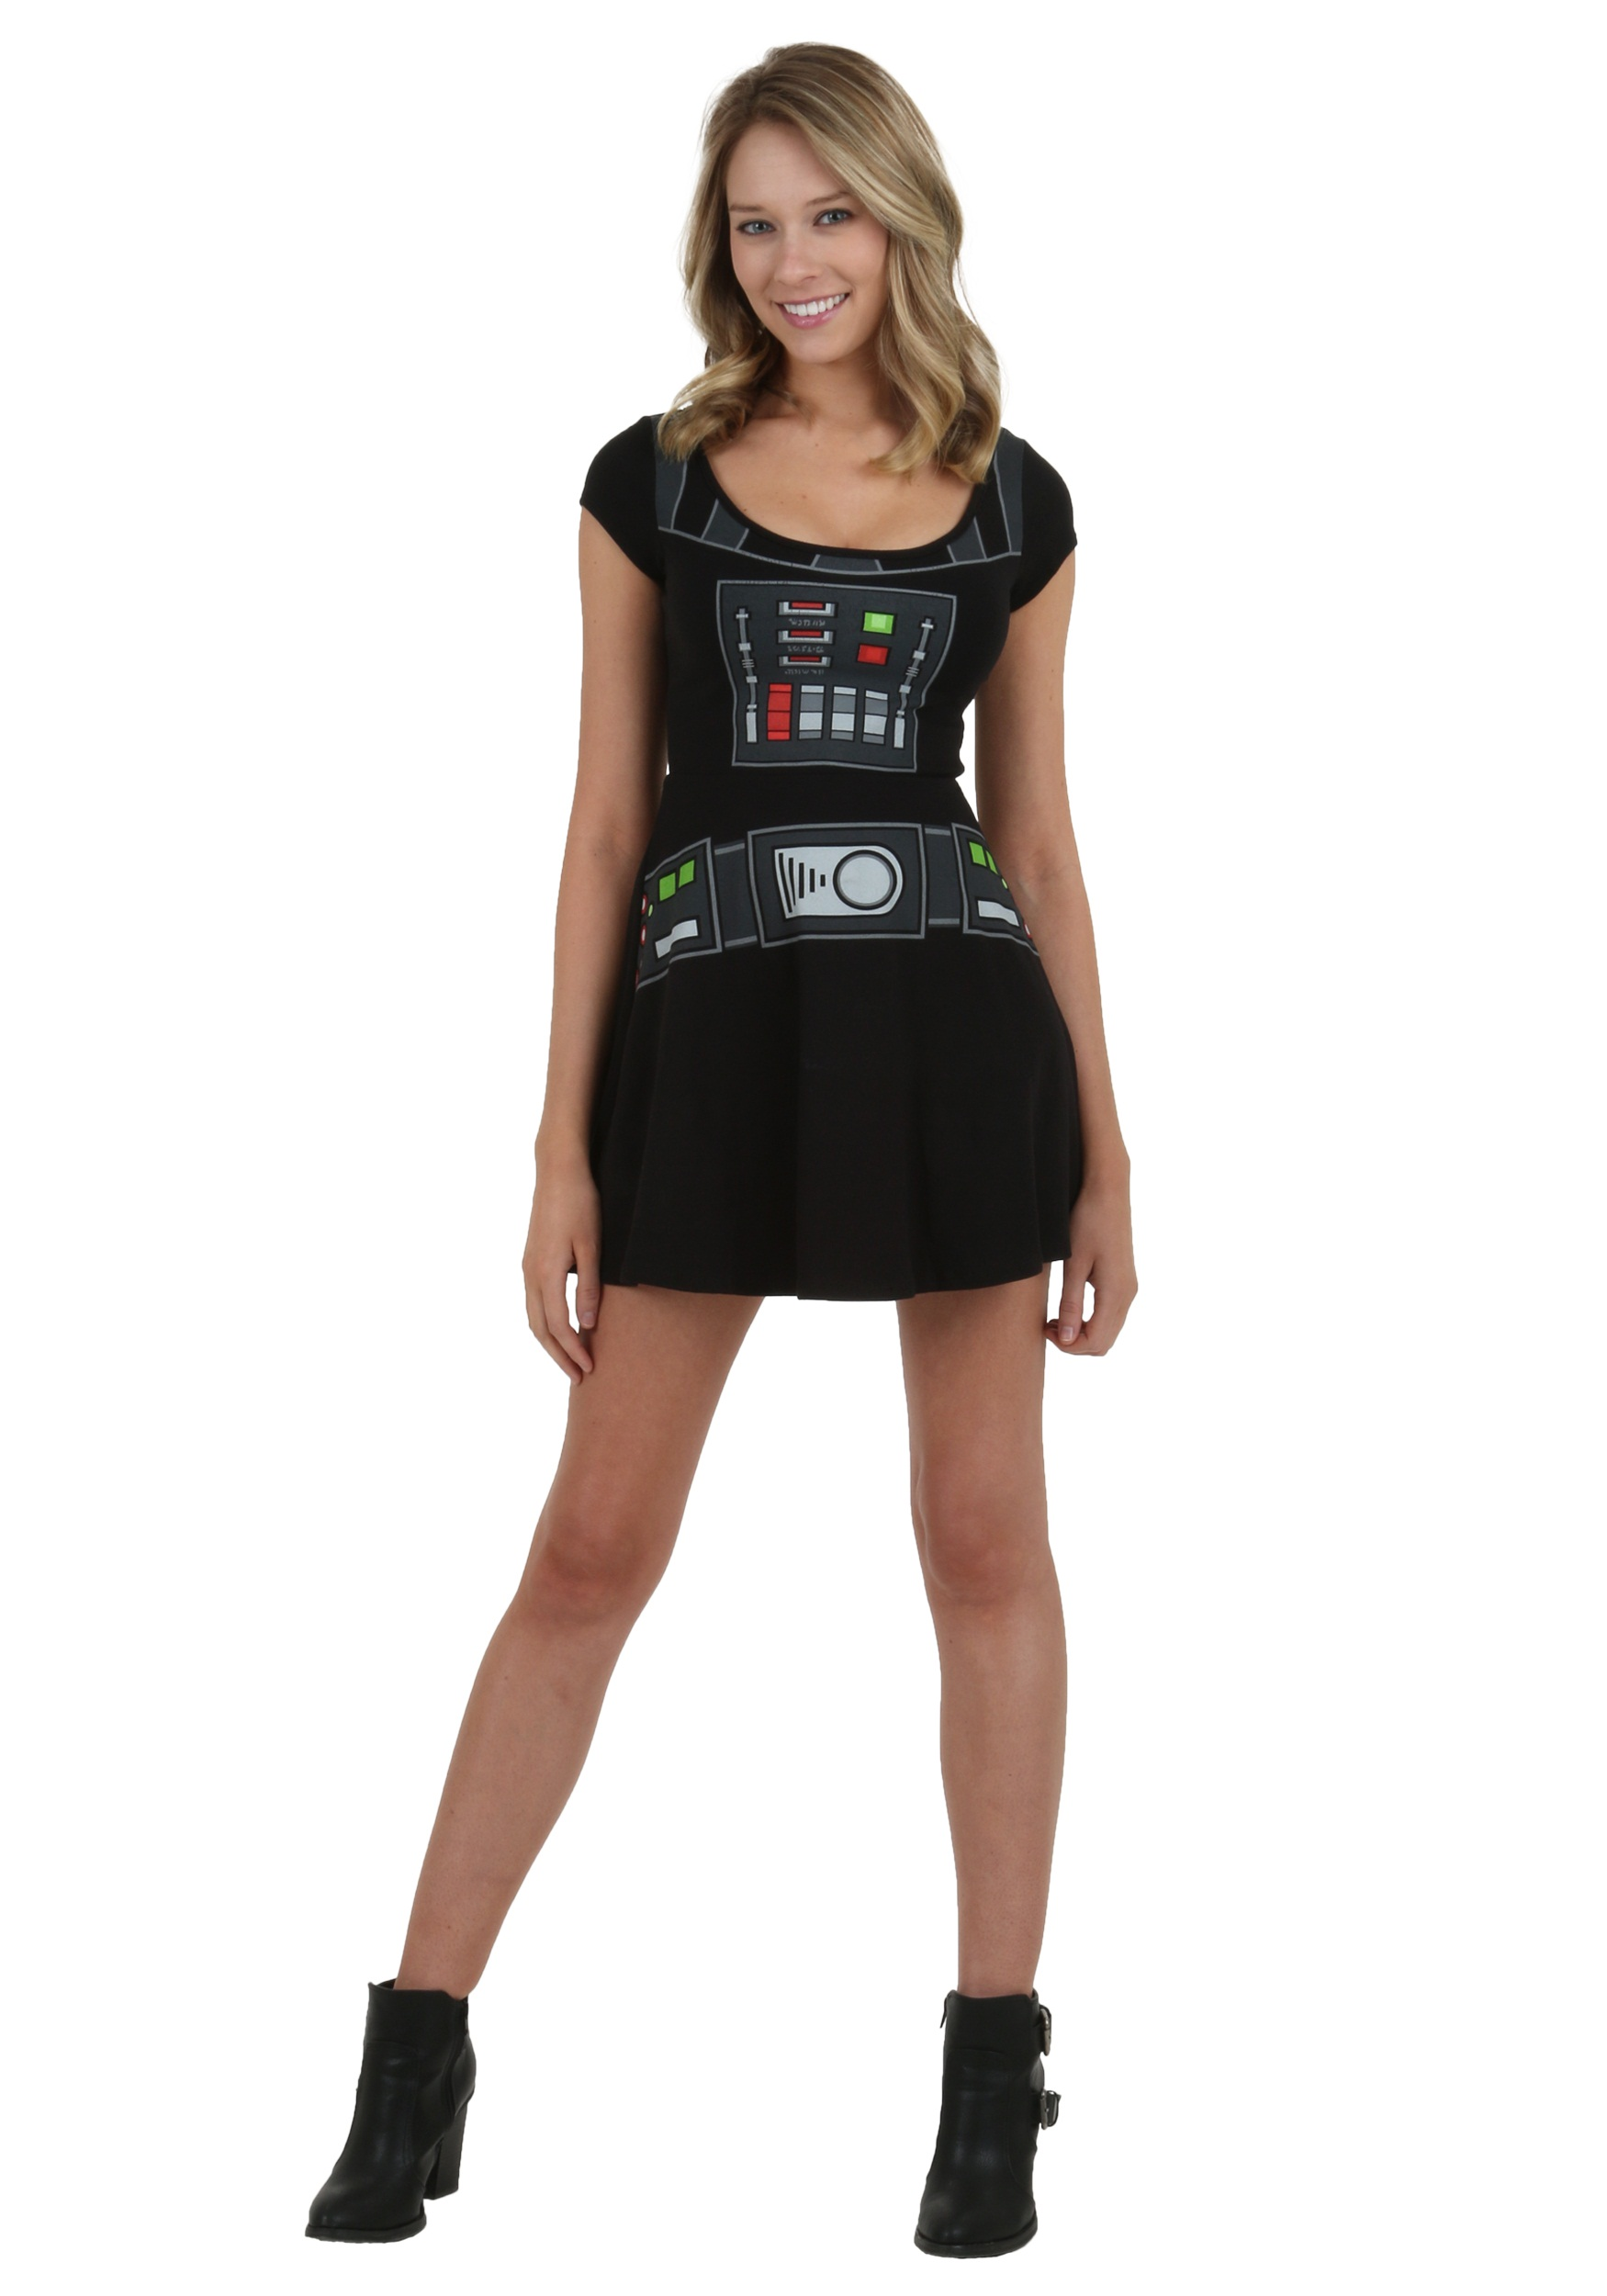 Darth Vader Costumes - Adult, Child, Kids Star Wars Halloween Costume